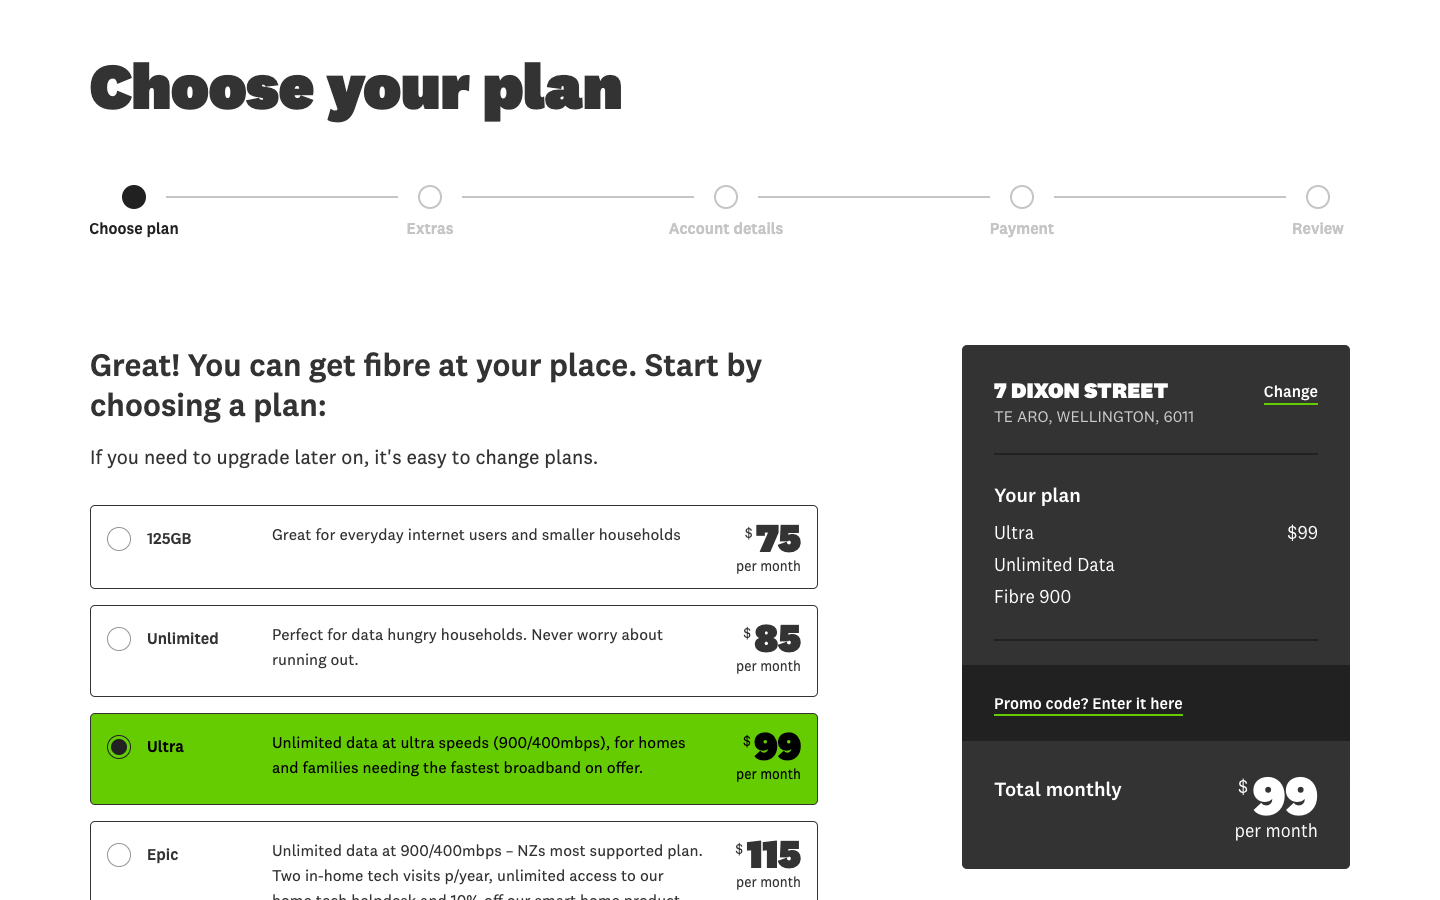 The sign-up process and plan chooser